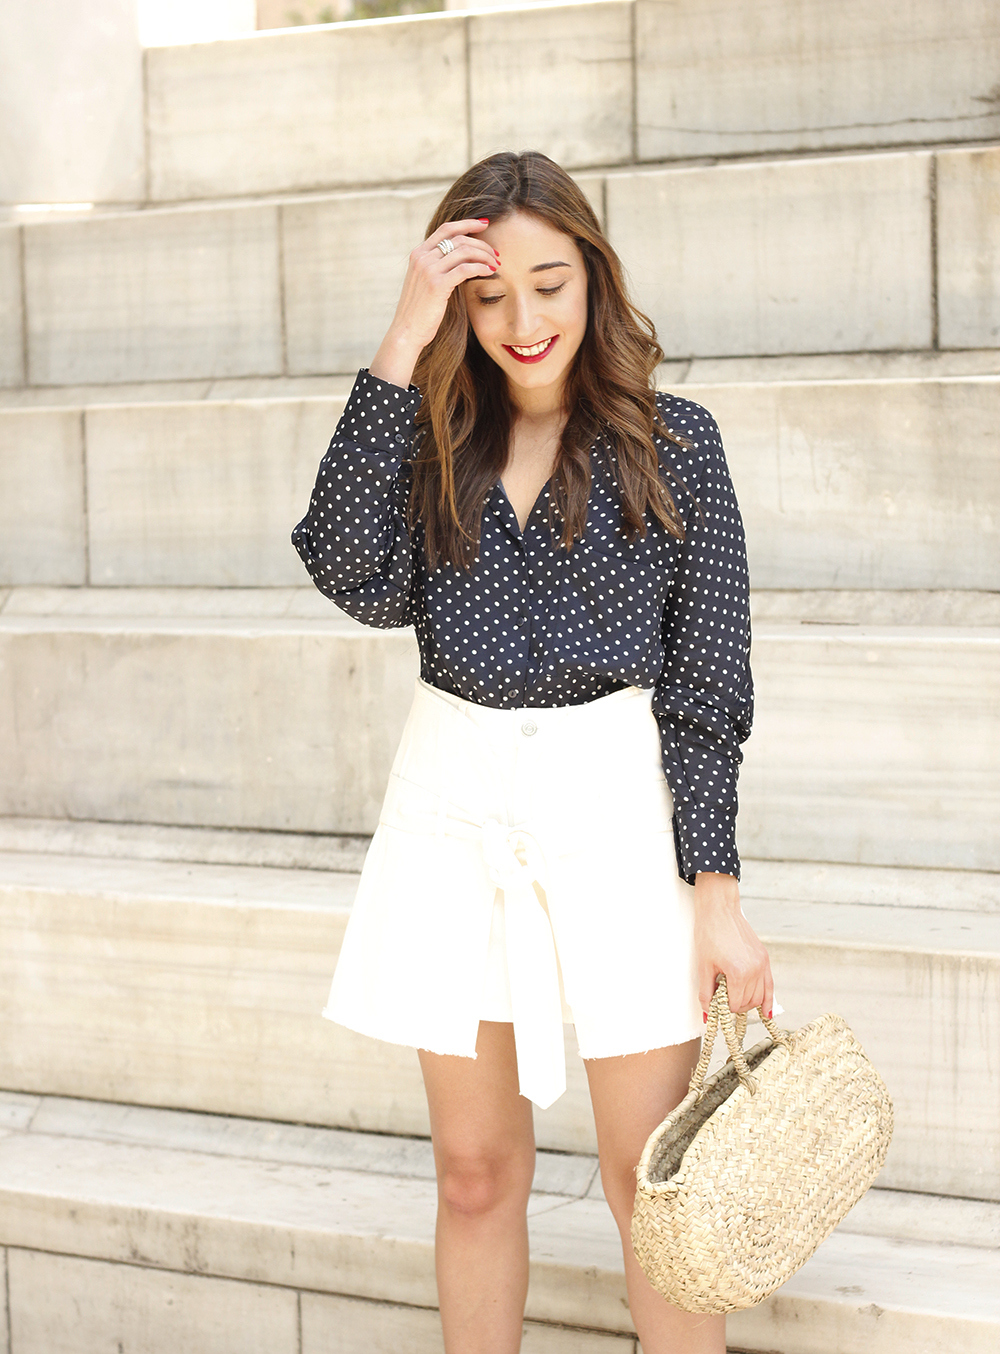 Polka dot shirt white denim skirt jewel flats wricked bag outfit style06